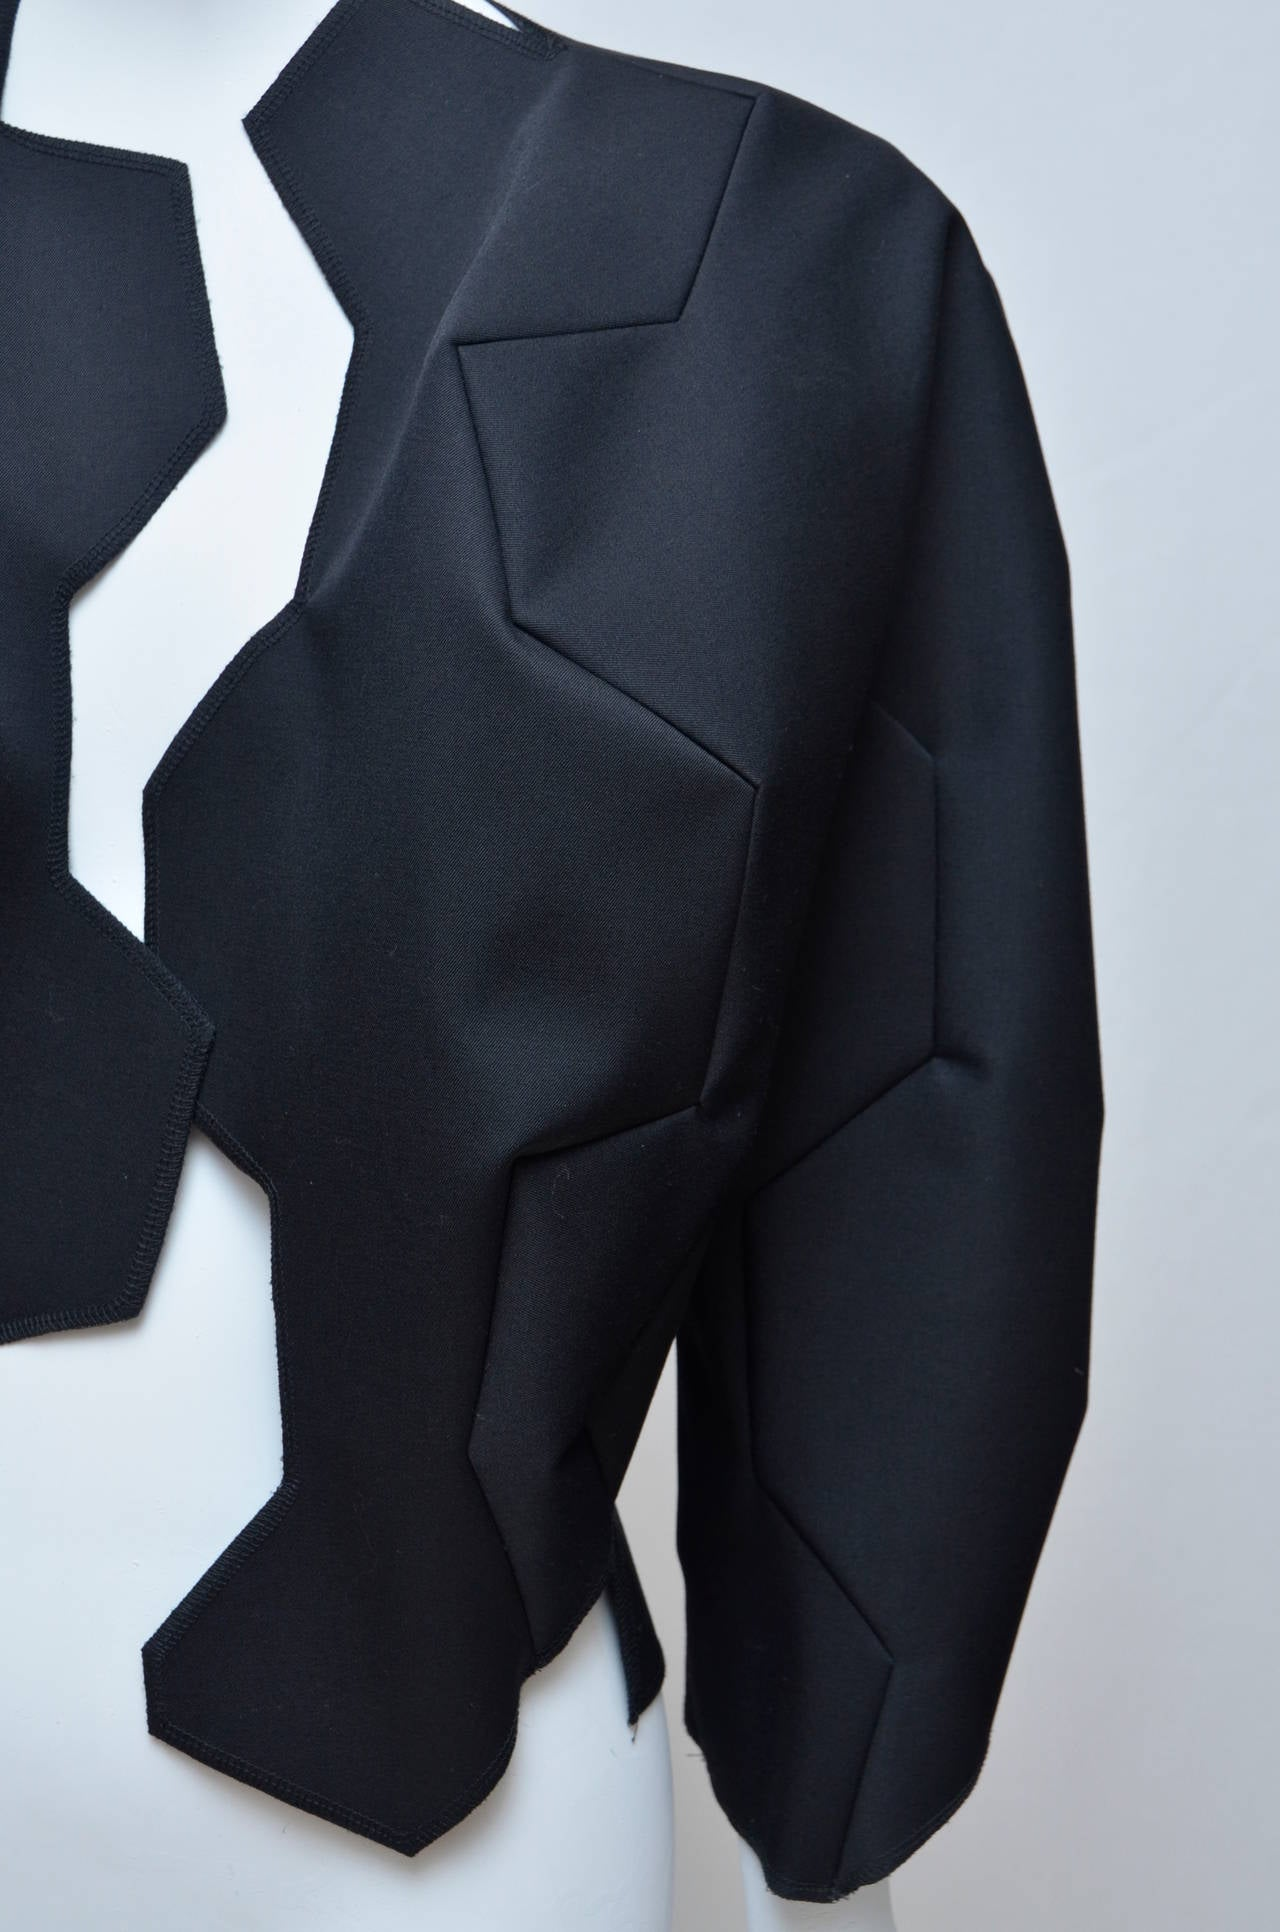 Comme Des Garcons Football Soccer Set Runway Jacket  and Skirt Ad 2008 In New never worn Condition For Sale In Hollywood, FL